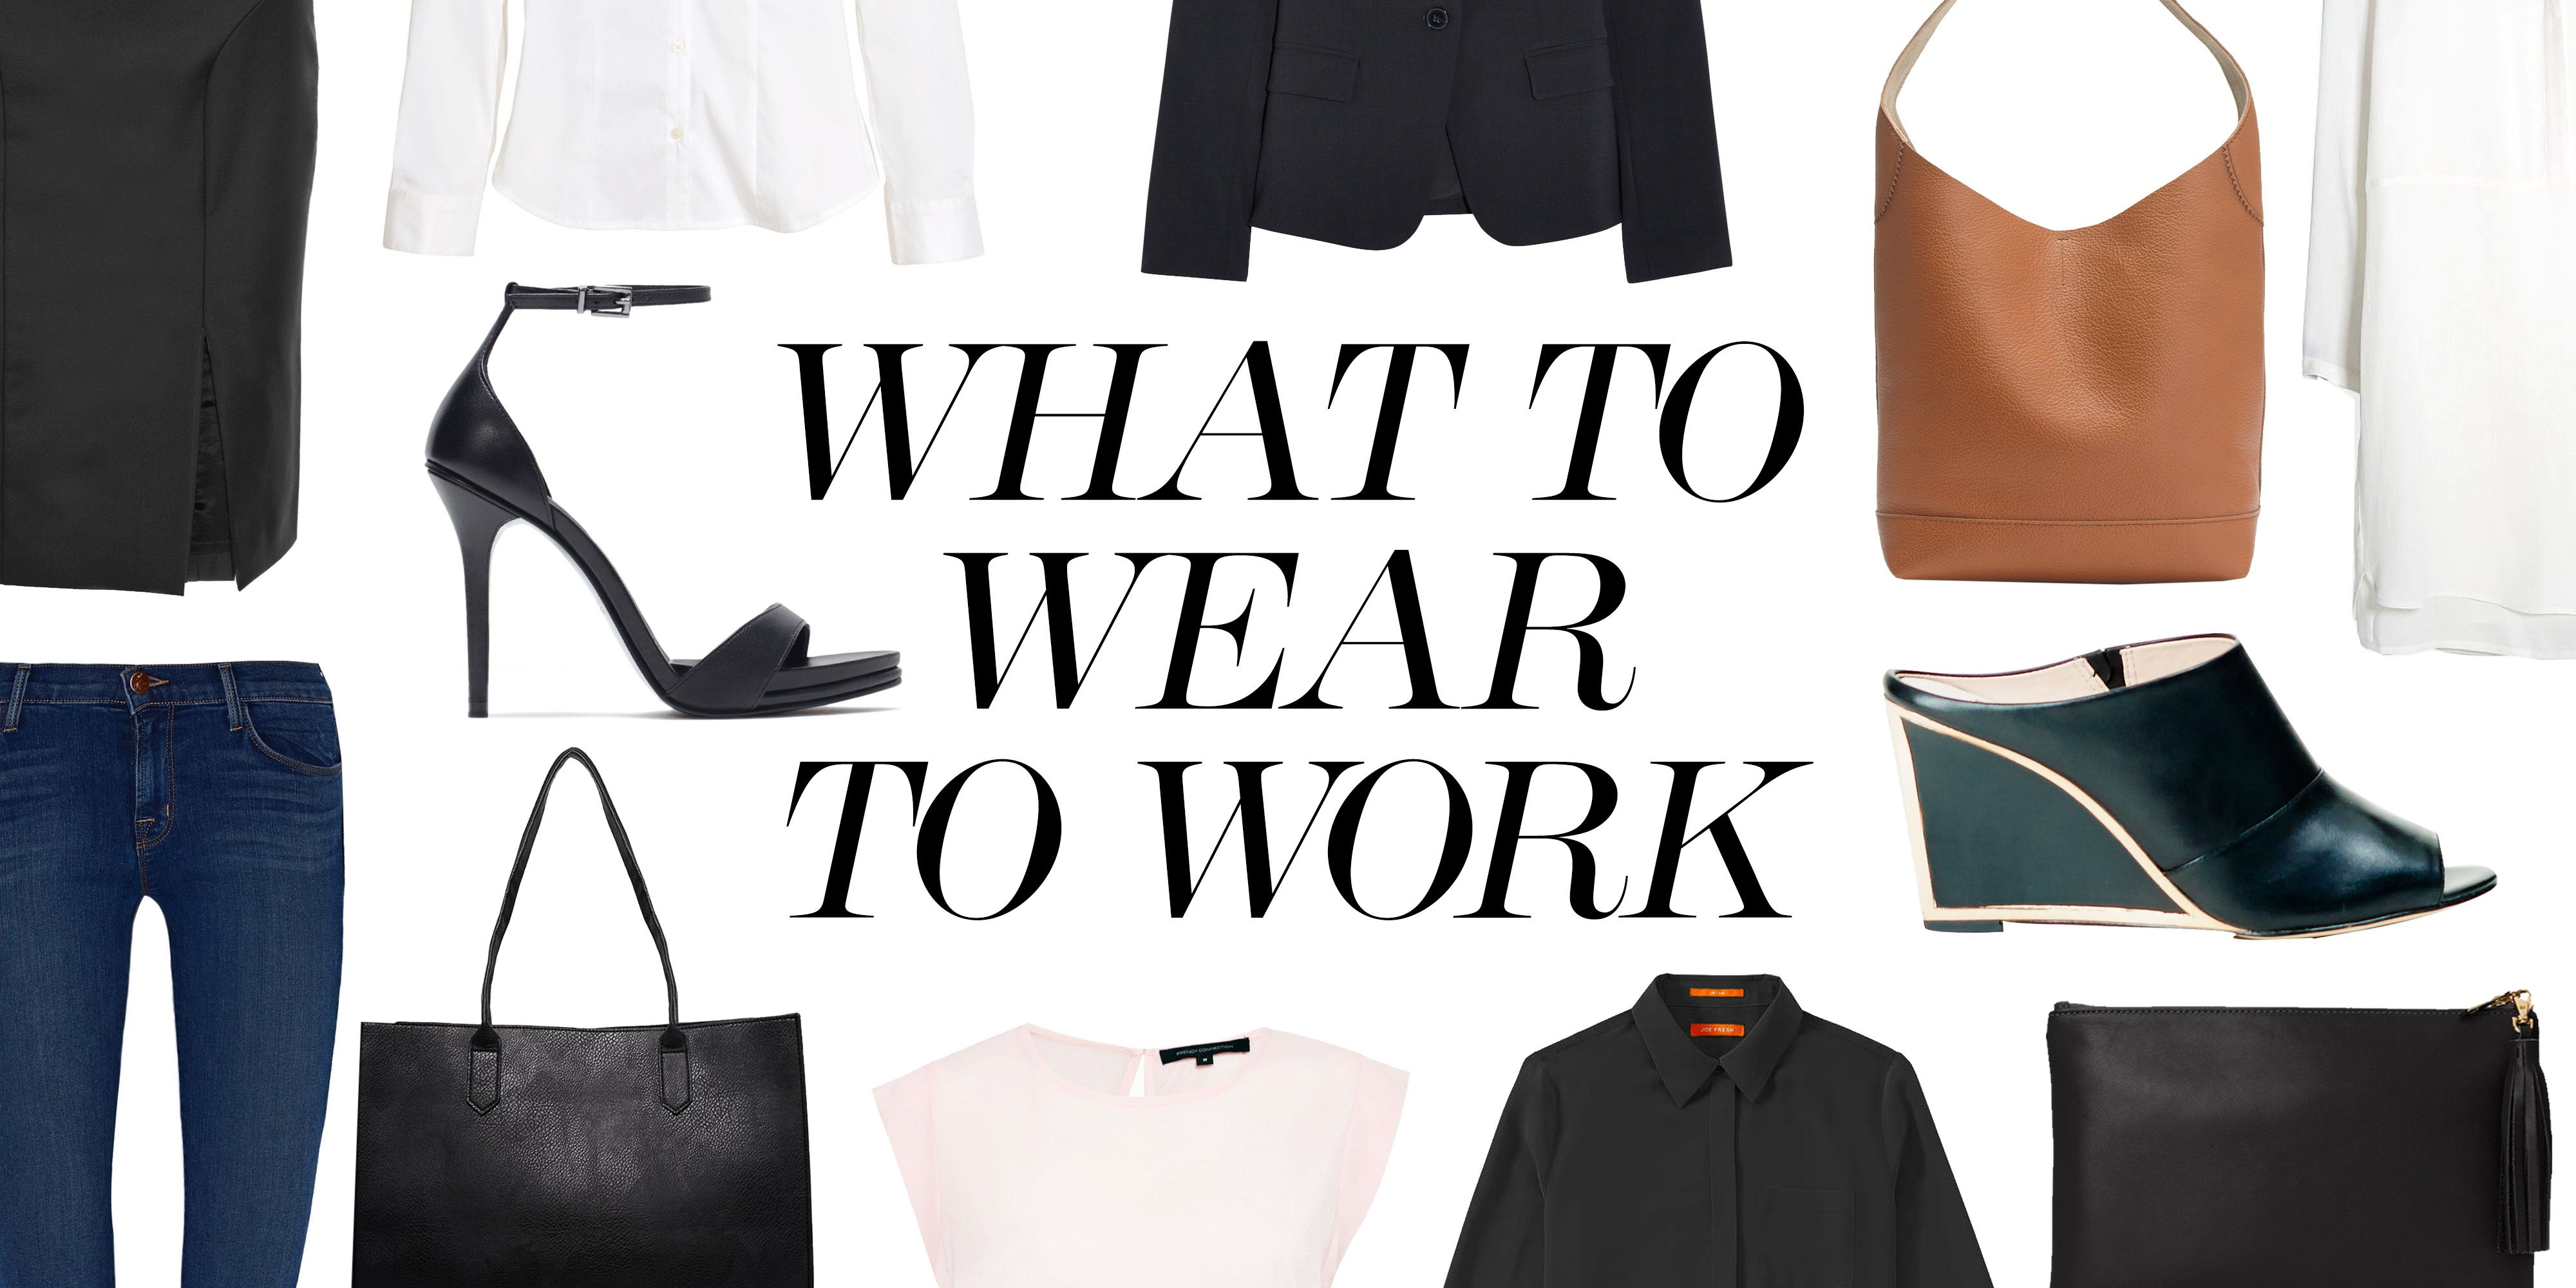 pinterest on office wardrobe work casual women images ideas capsule amazing everydaysavvy clothing for practical best business outfits essentials